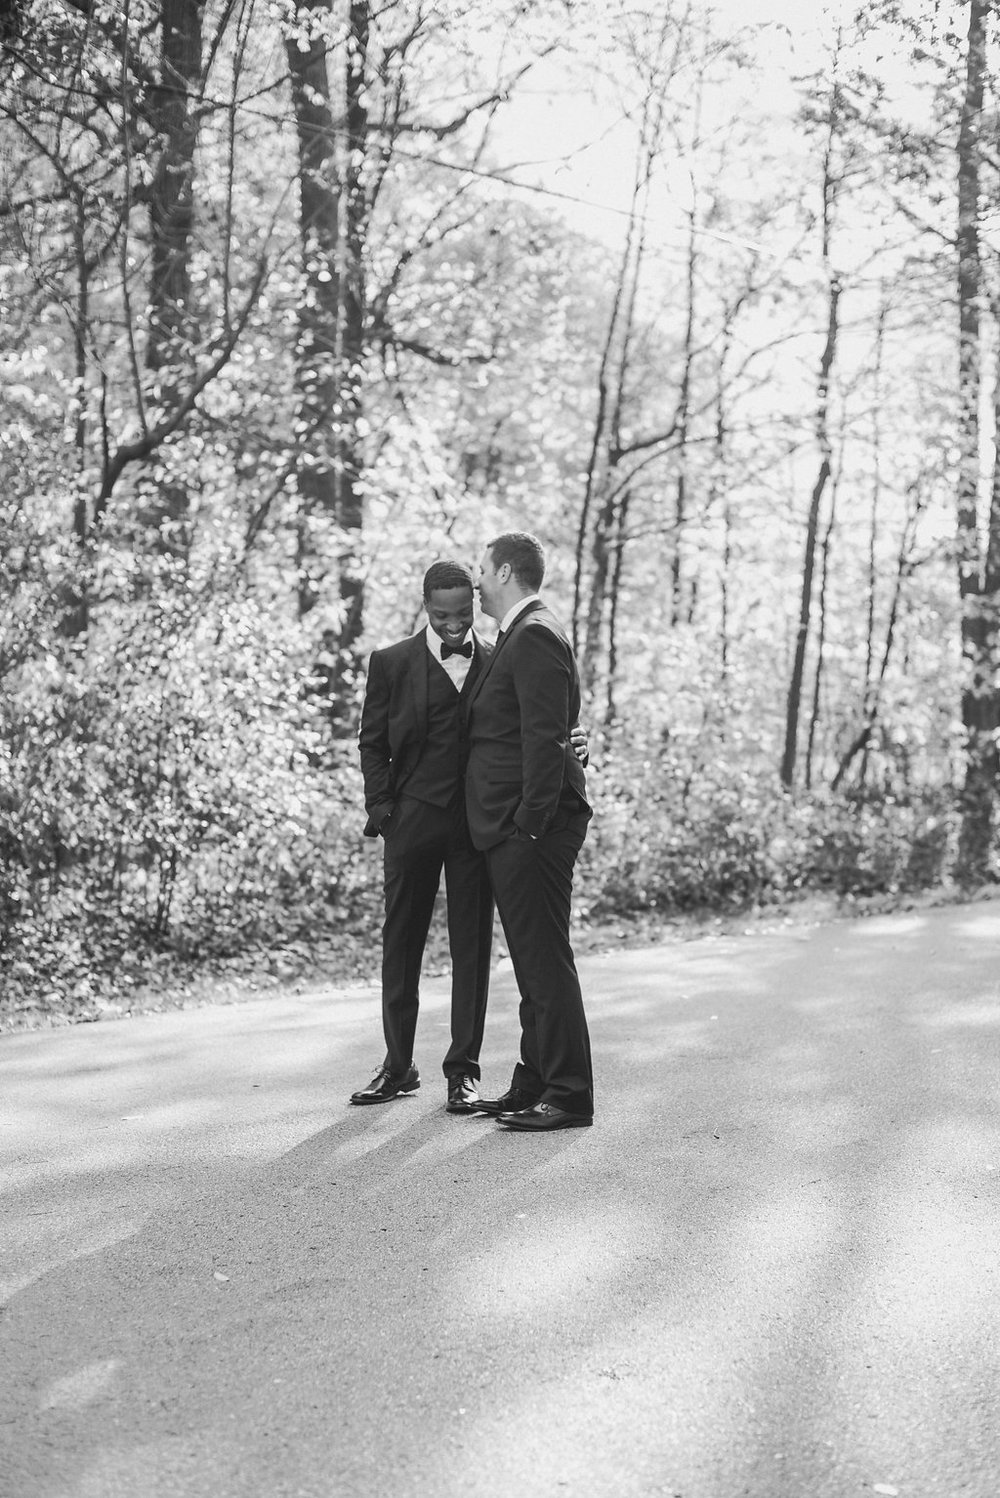 RiverClubofMequon-MequonWI-LGBT-Gay-StyledShoot-9.jpg